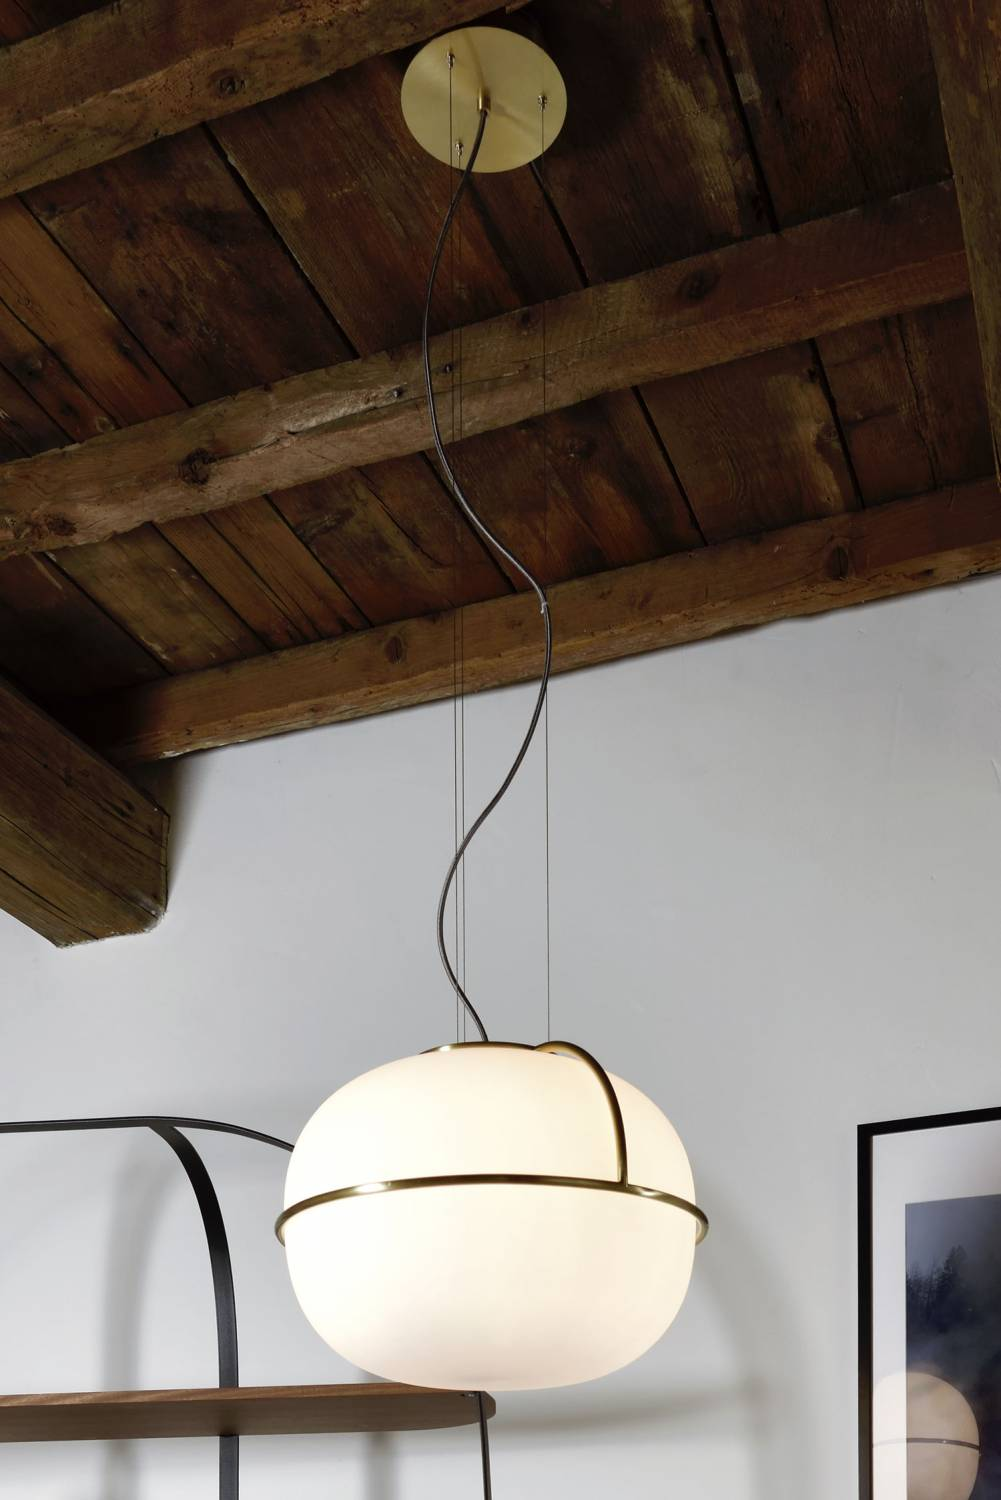 L88 pendant light by Julie Pfligersdorffer for Monolithe Edition | Flodeau.com